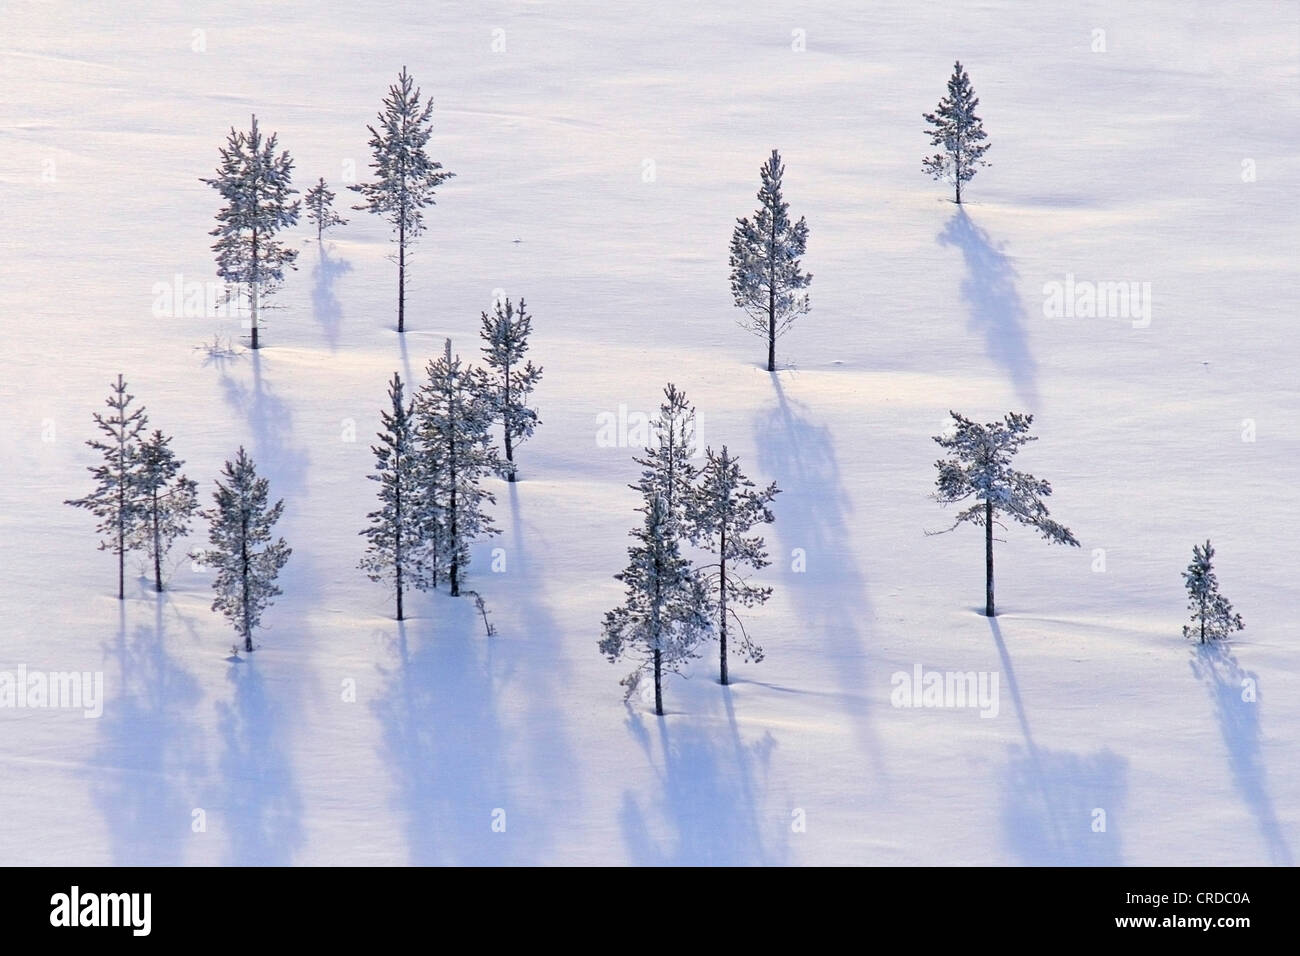 Photographed from air. Winter trees, Finland, Lapland, Kittilae - Stock Image